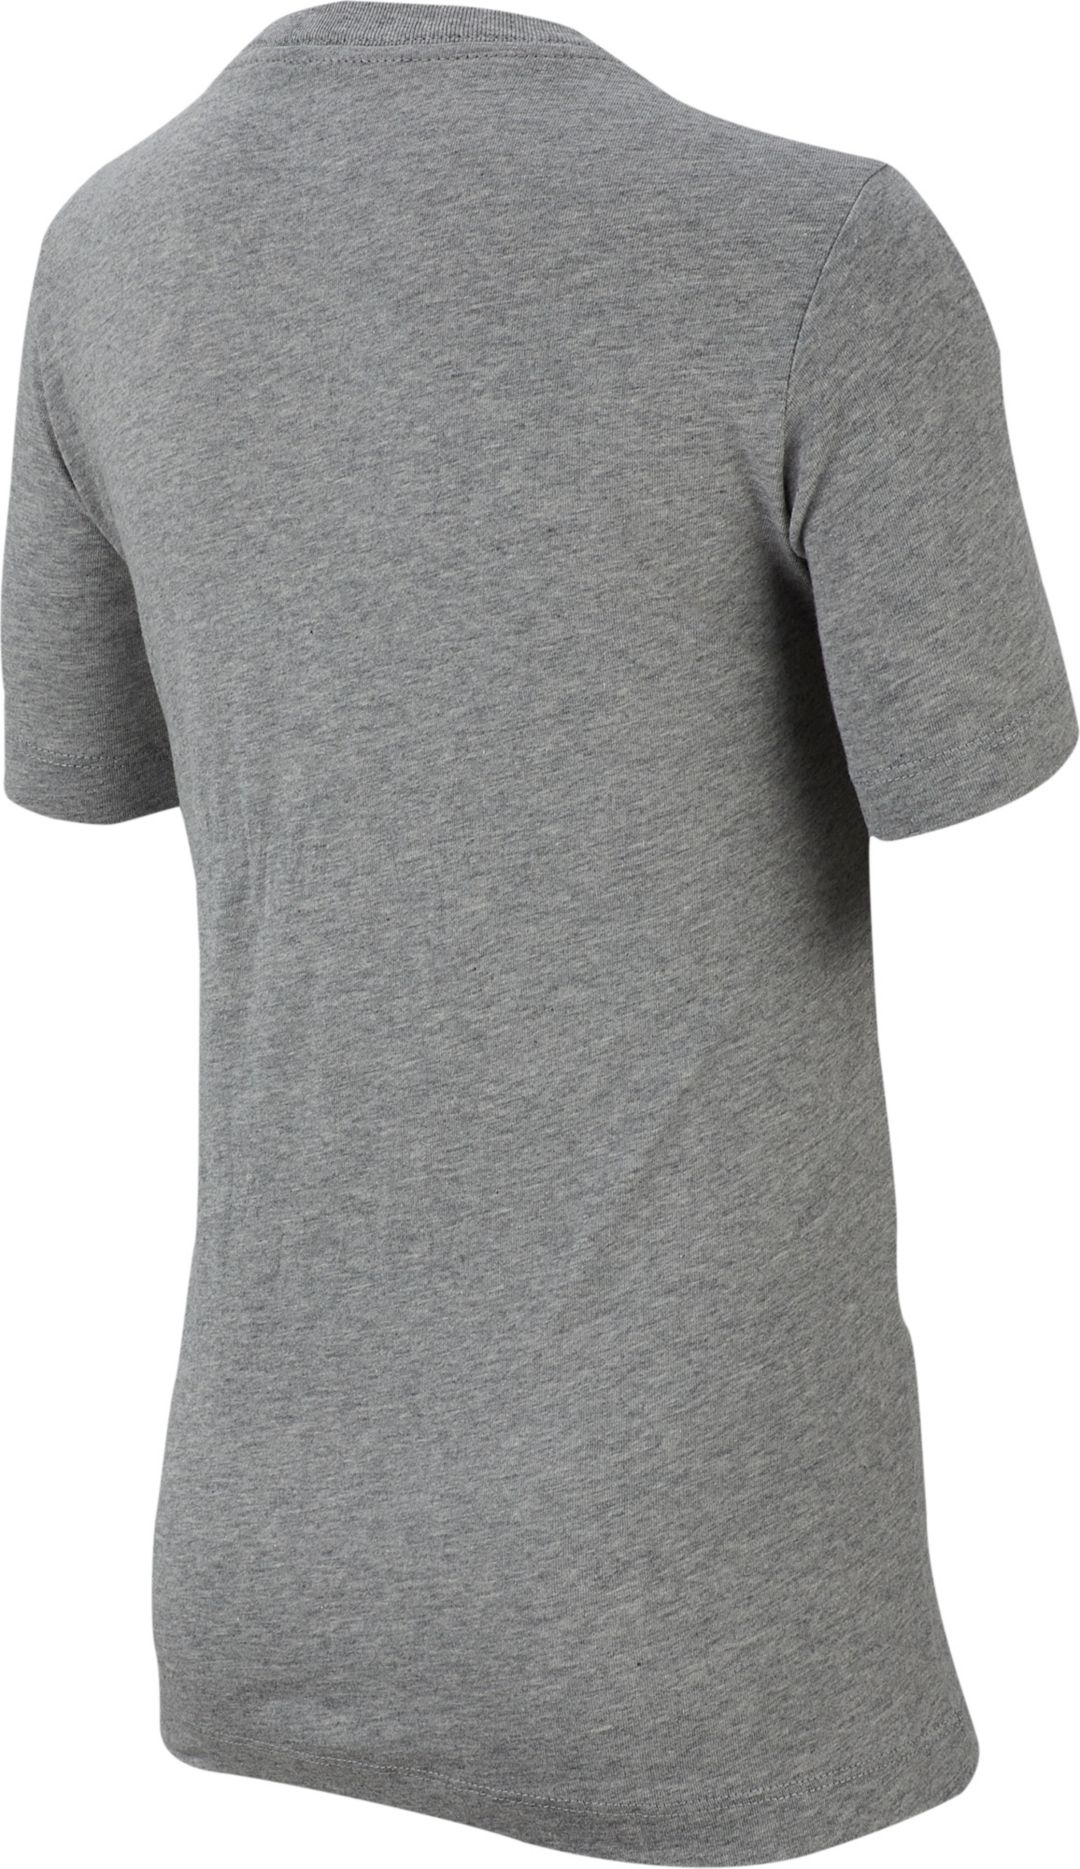 multiple colors low price picked up Nike Boys' Sportswear Soccer Ball T-Shirt